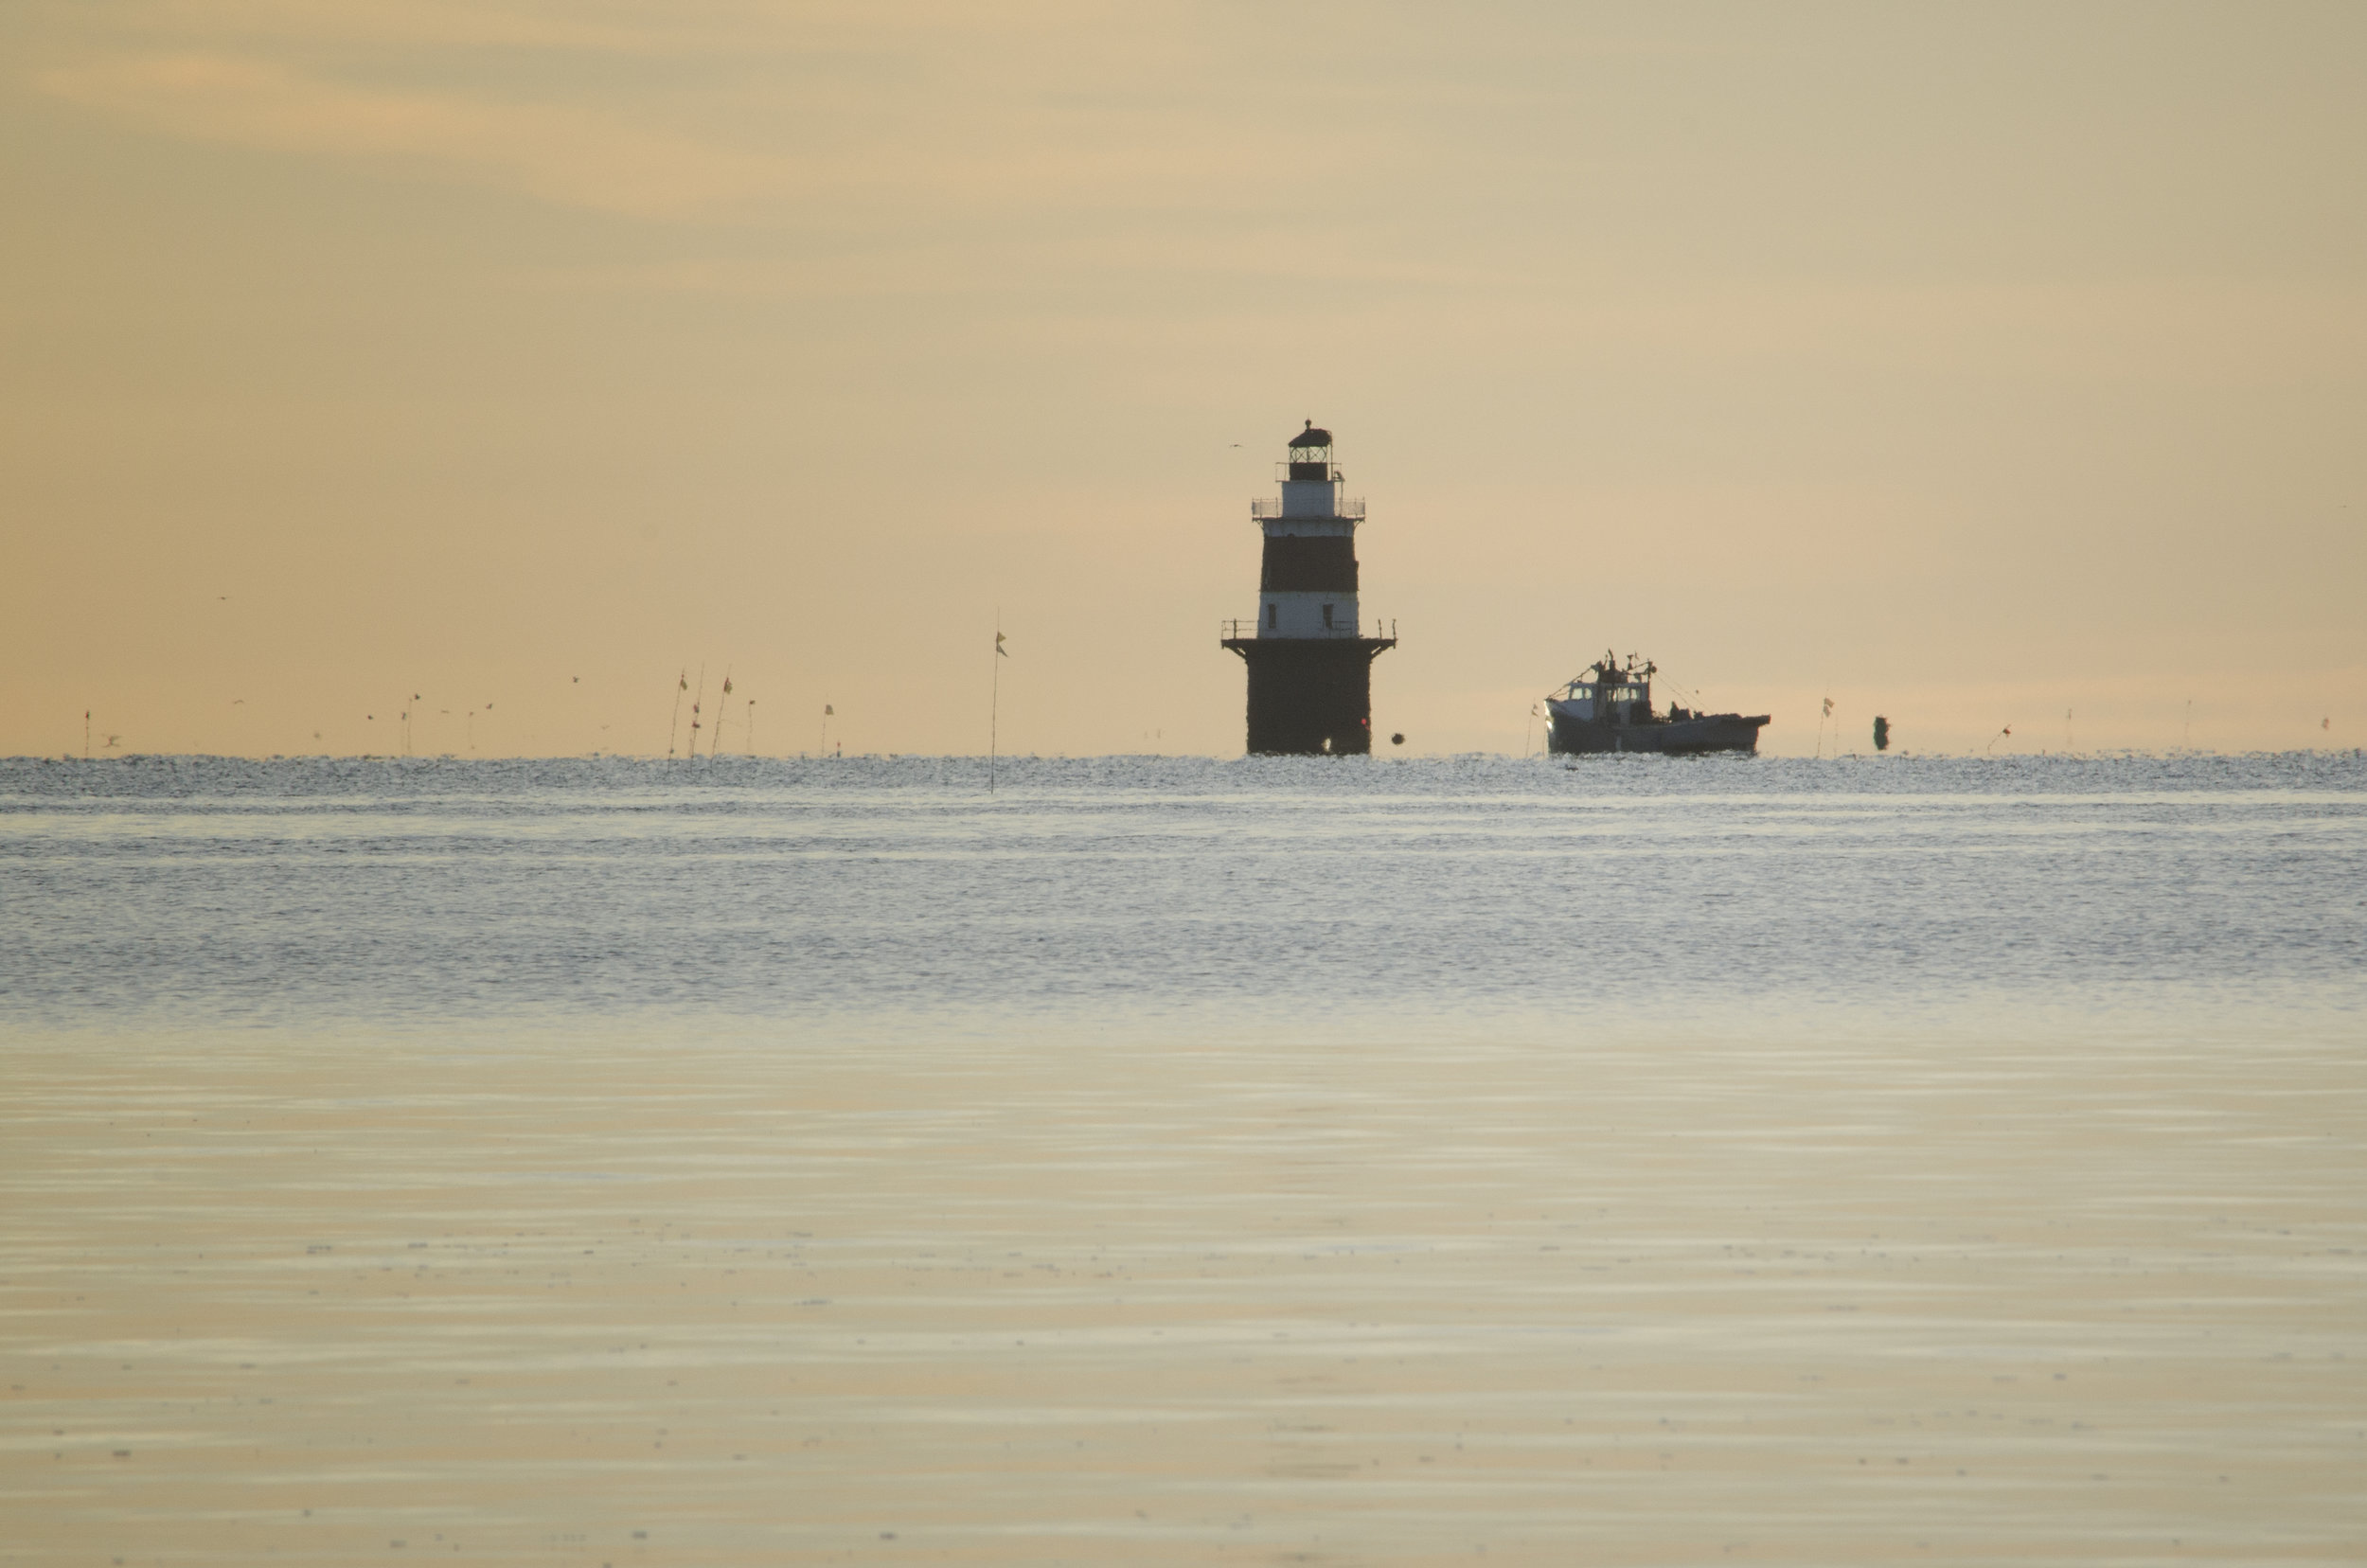 trawling-by-the-lighthouse_25733846870_o.jpg